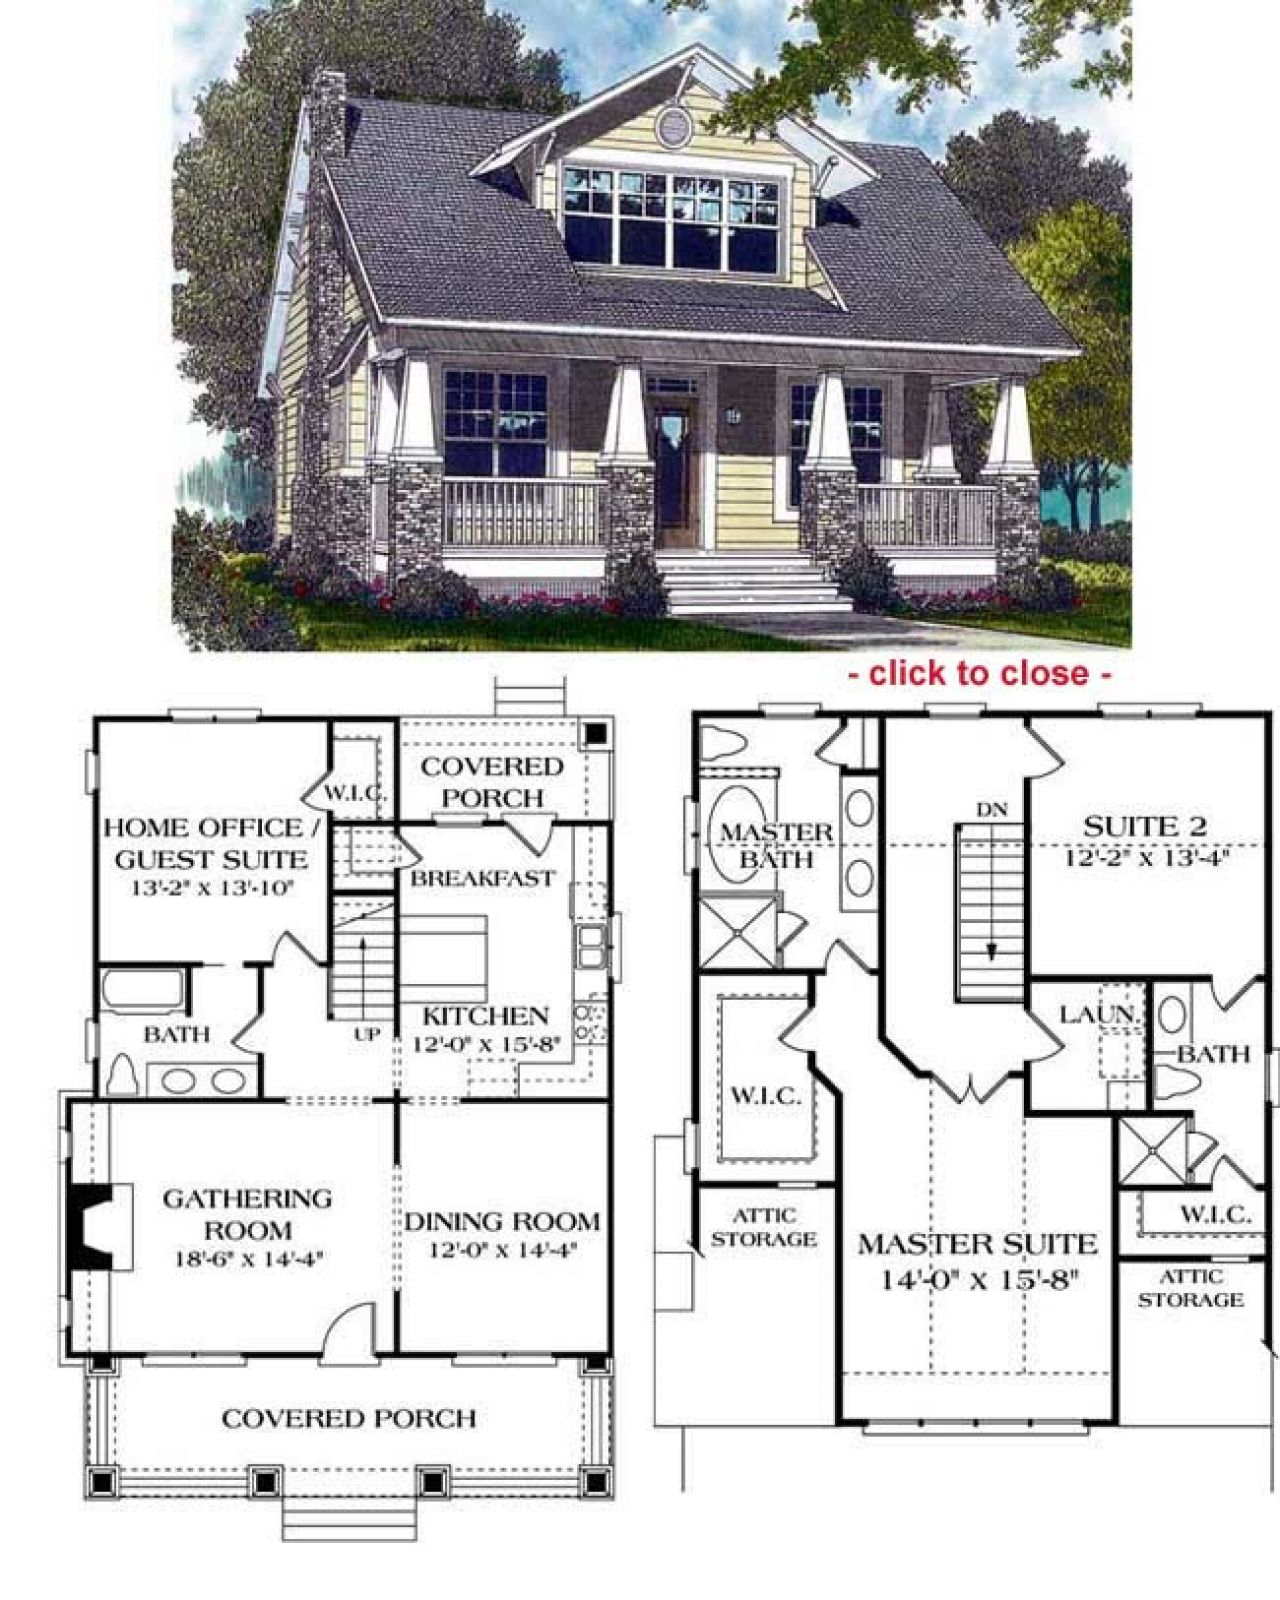 Bungalow house styles craftsman house plans and for Craftsman bungalow home plans